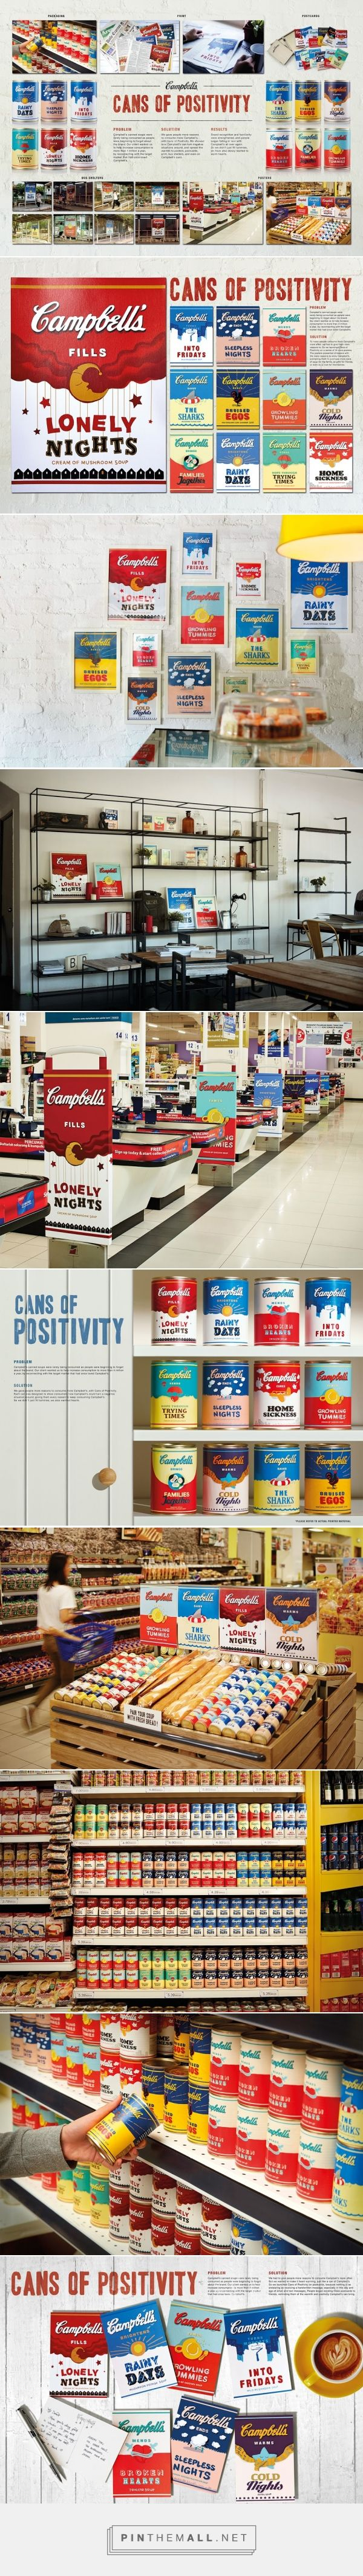 Campbells Cans of Positivity Packaging Design by Y&R Malaysia - http://www.packagingoftheworld.com/2016/05/cans-of-positivity.html